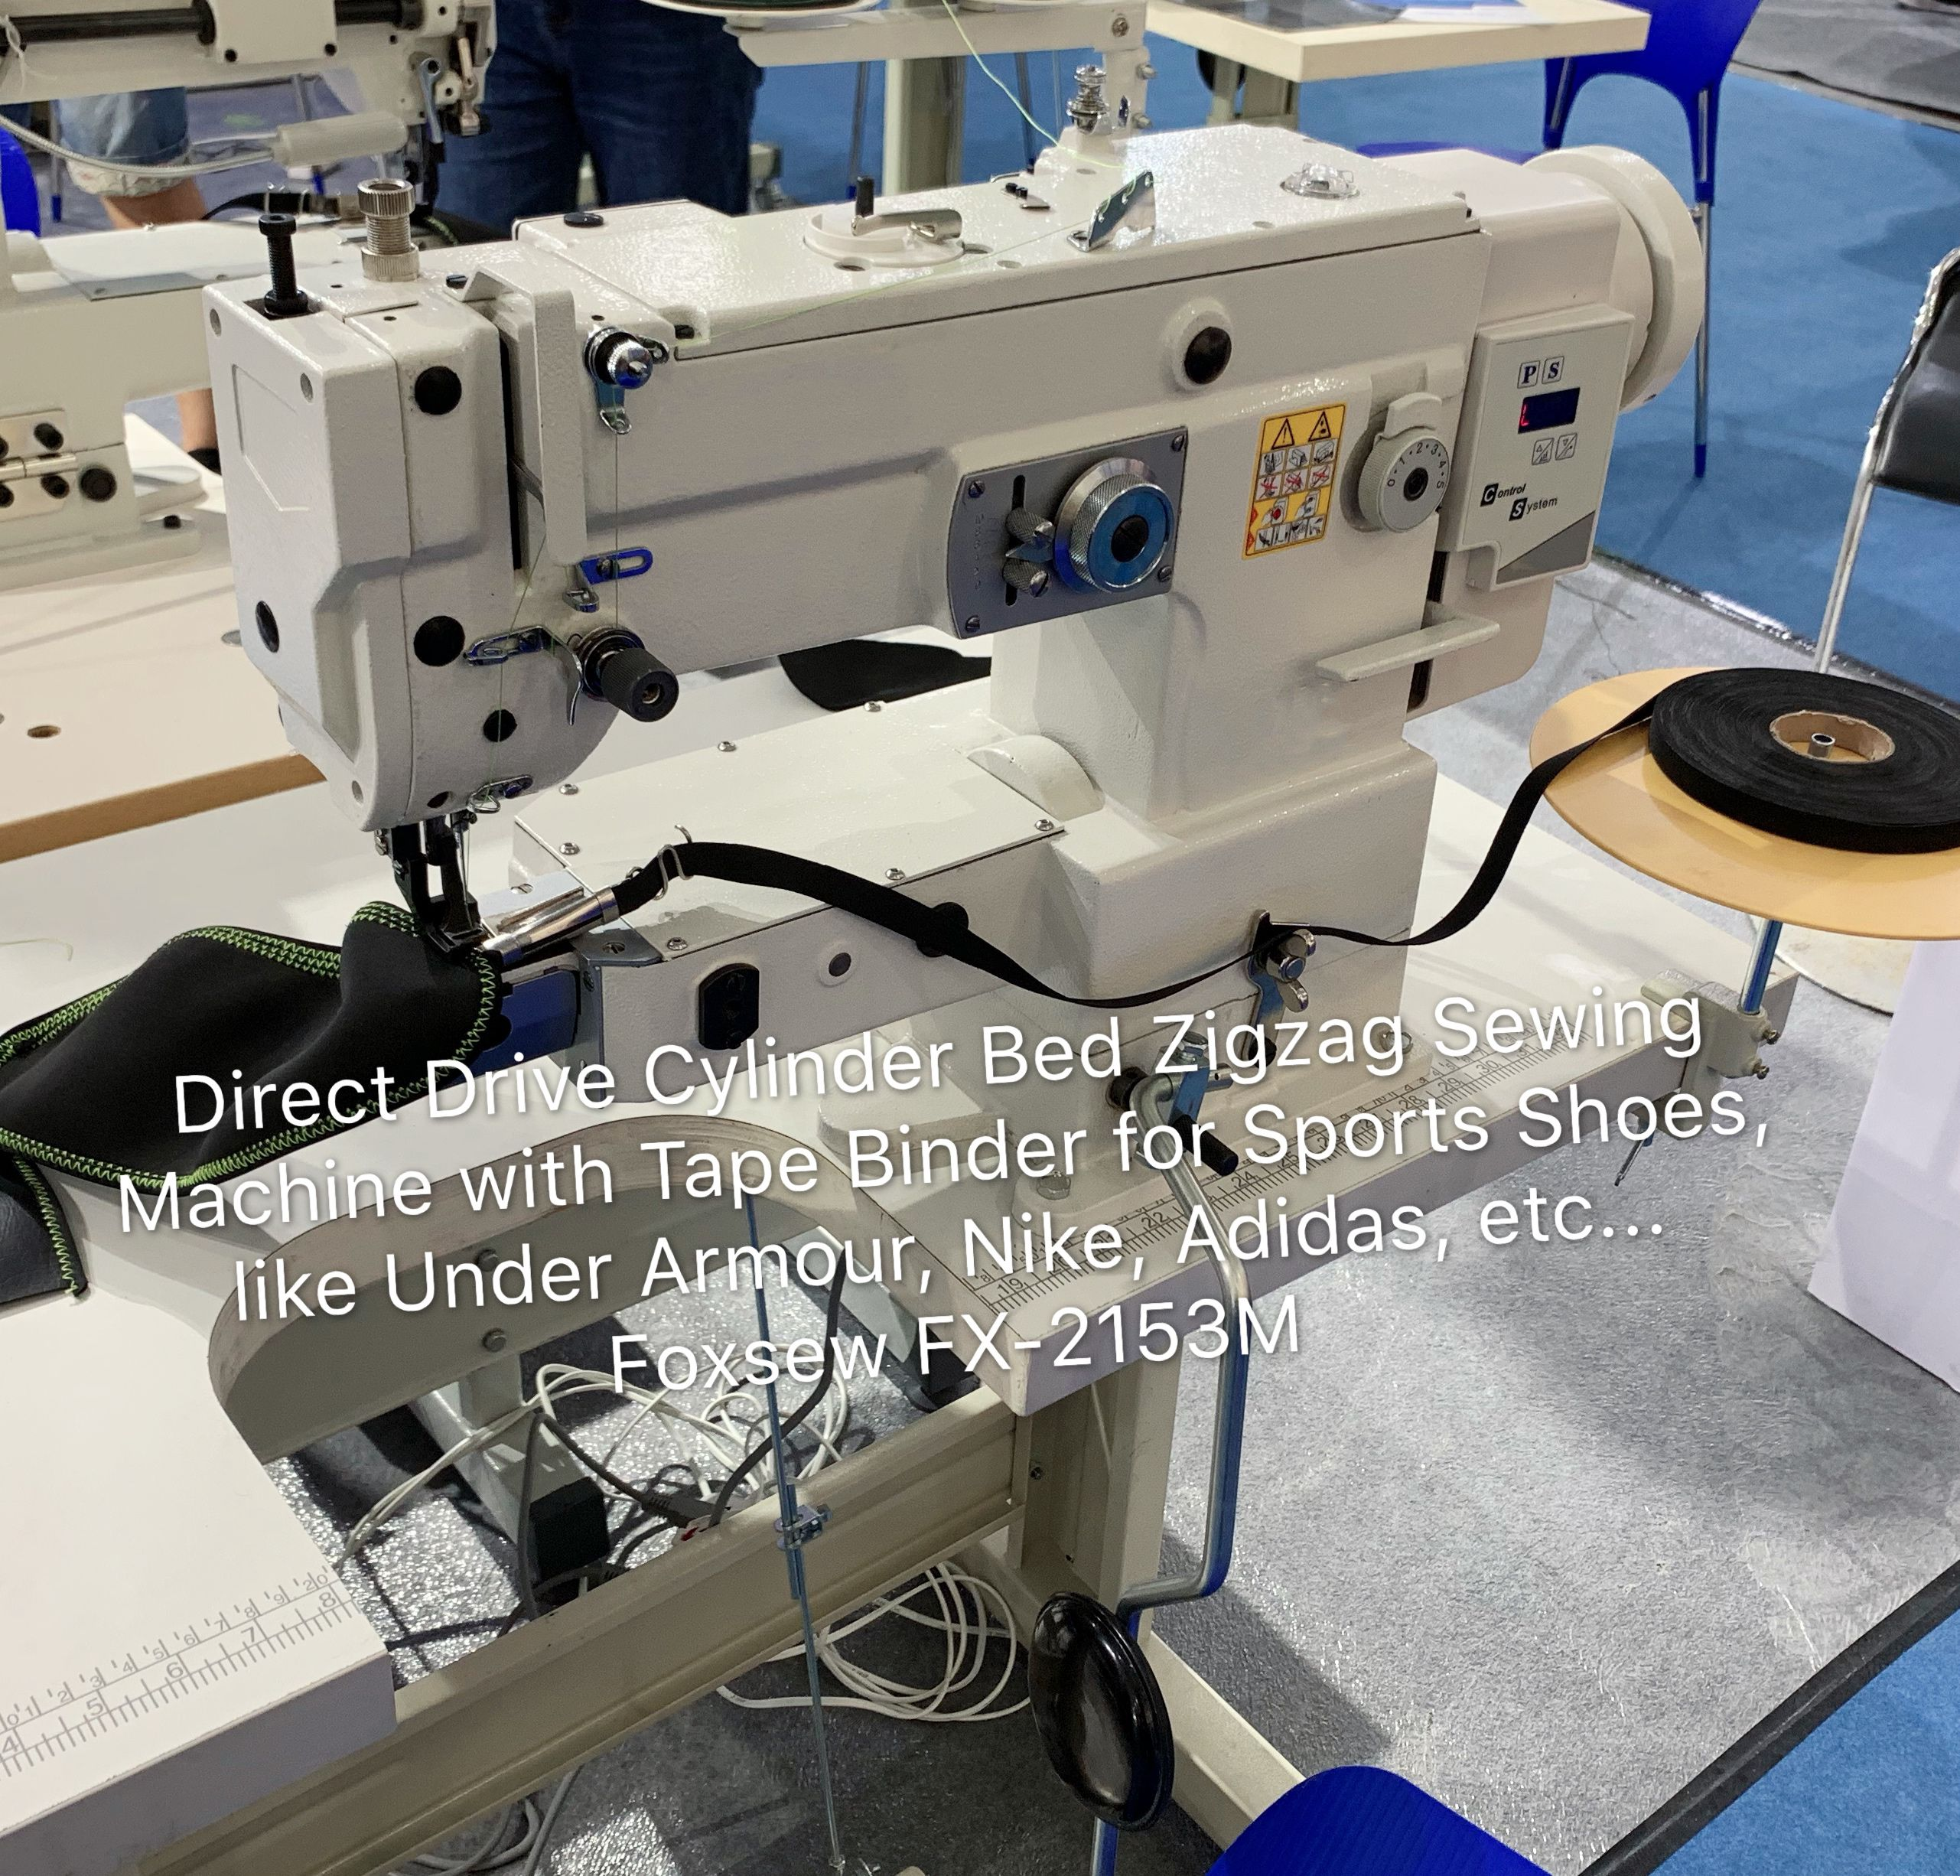 Direct Drive Cylinder Bed Zigzag Sewing Machine For Tape Binding On Sports Shoes Foxsew Fx 2153m 01 003